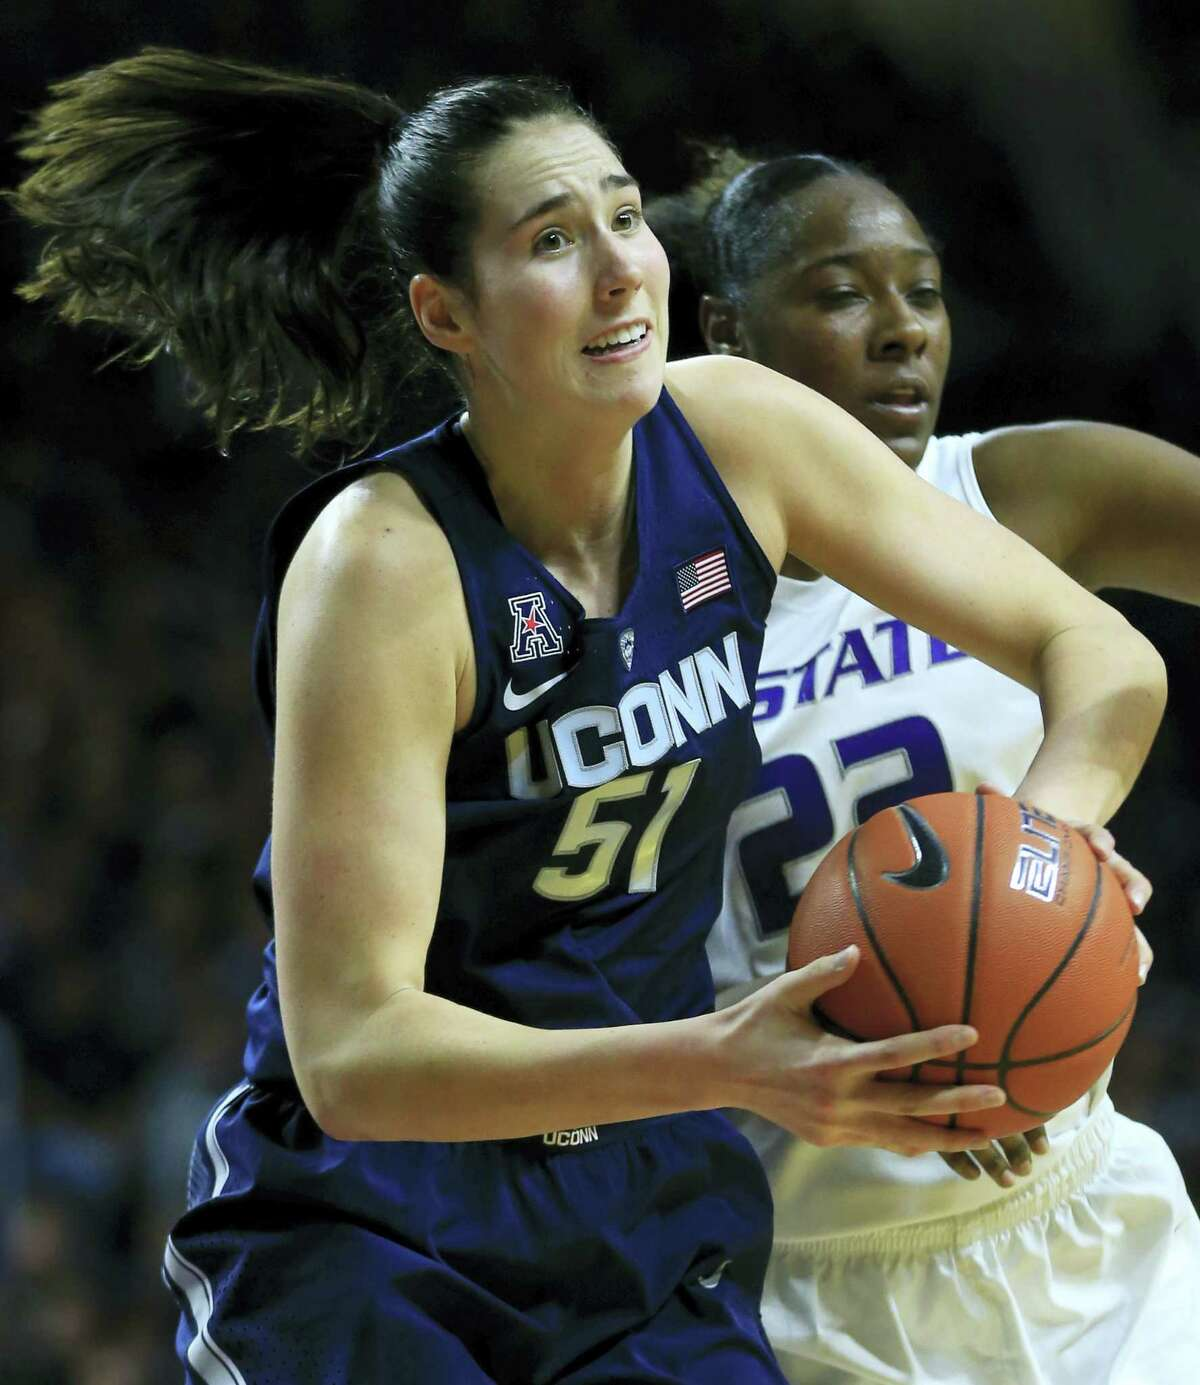 Connecticut center Natalie Butler (51) rebounds in front of Kansas State forward Breanna Lewis (22) during the first half of an NCAA college basketball game in Manhattan, Kan. on Sunday, Dec. 11, 2016.